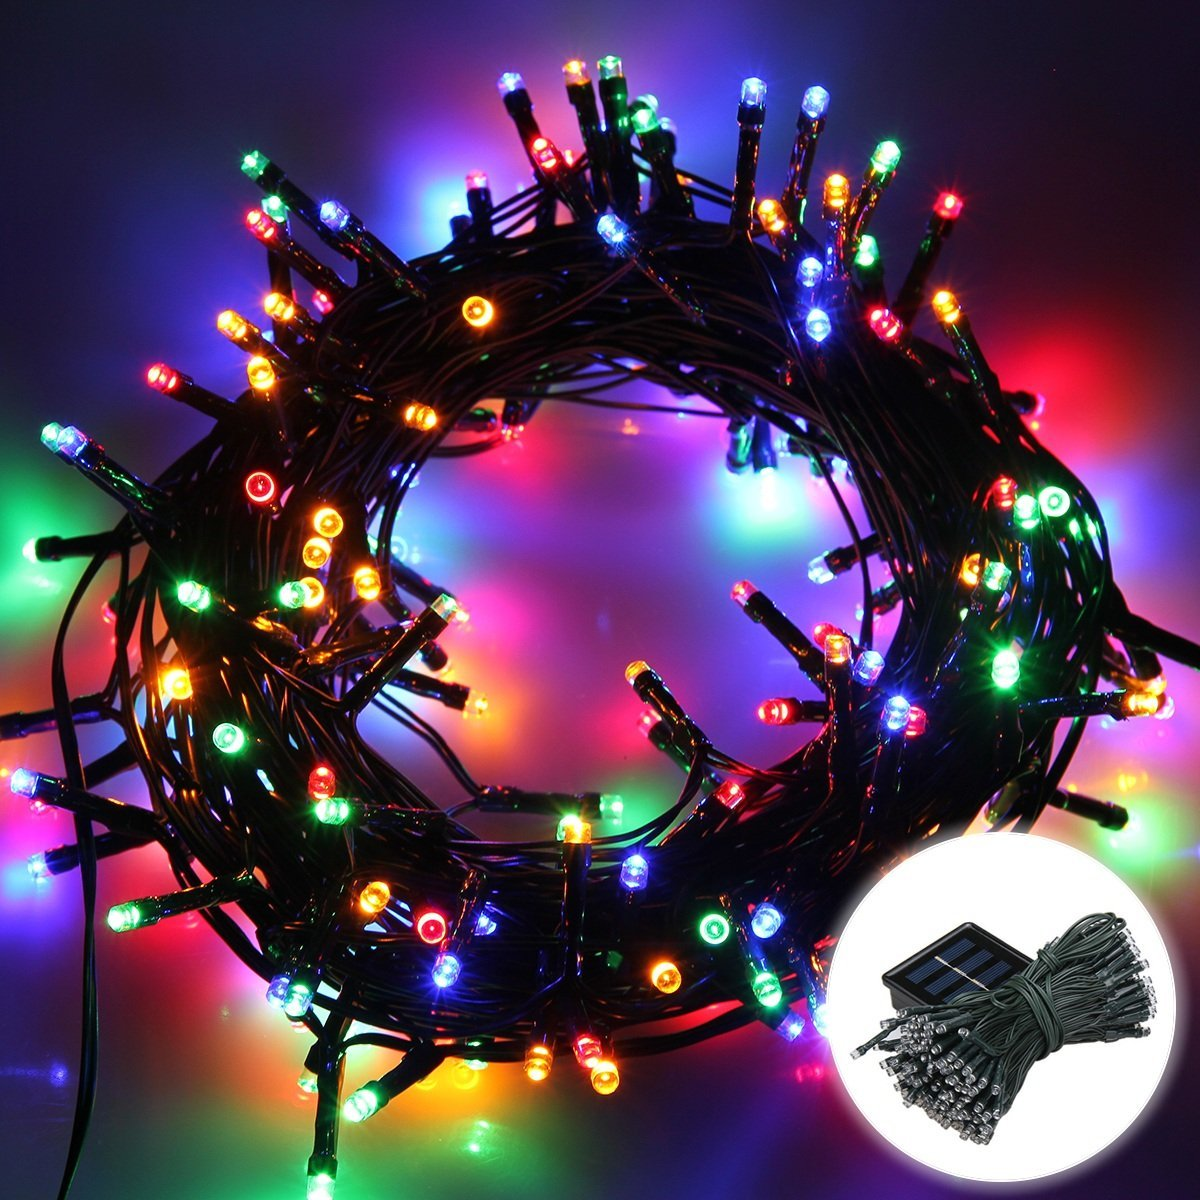 Qedertek Christmas Lights Solar String Lights 72ft 200 LED Fairy Lights 8 Modes Ambiance Lighting for Outdoor... by Qedertek